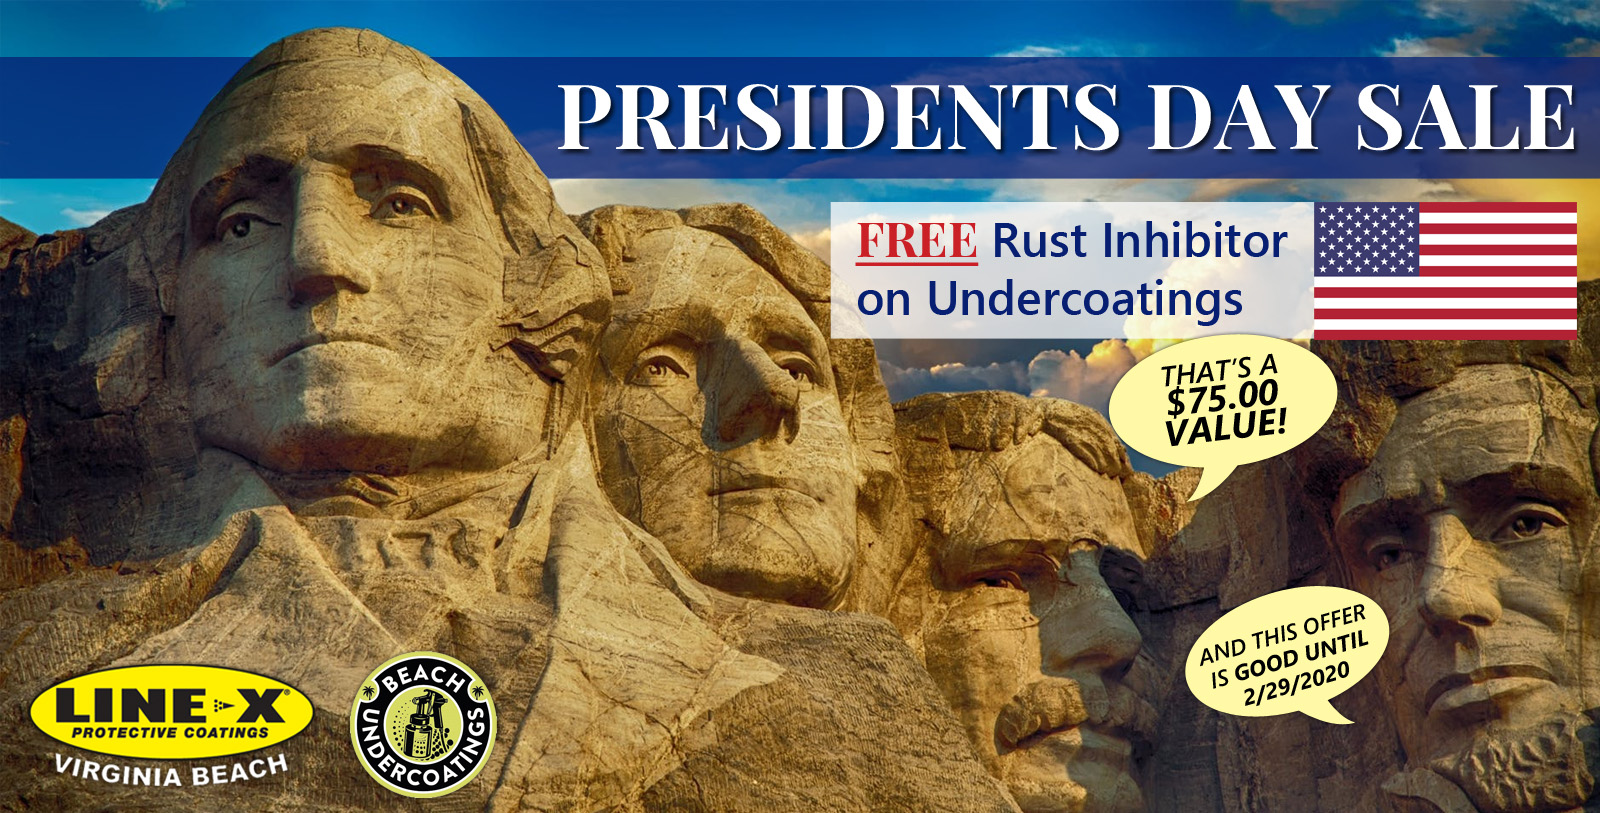 Presidents Day Sale - FREE Rust Inhibitor on Undercoatings!